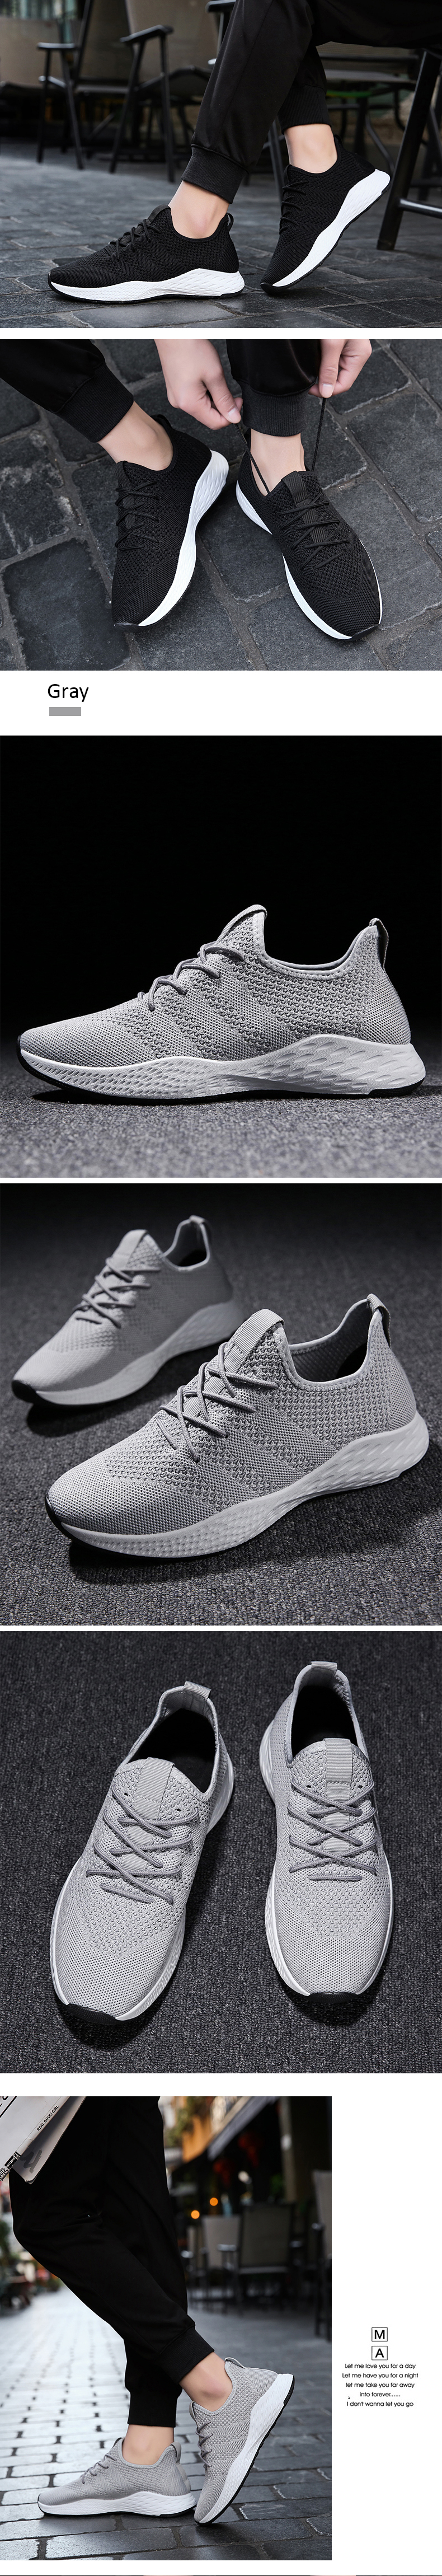 HTB1VtKRX. rK1Rjy0Fcq6zEvVXaE - Men Casual Shoes Men Sneakers Brand Men Shoes Male Mesh Flats Loafers Slip On Big Size Breathable Spring Autumn Winter Xammep